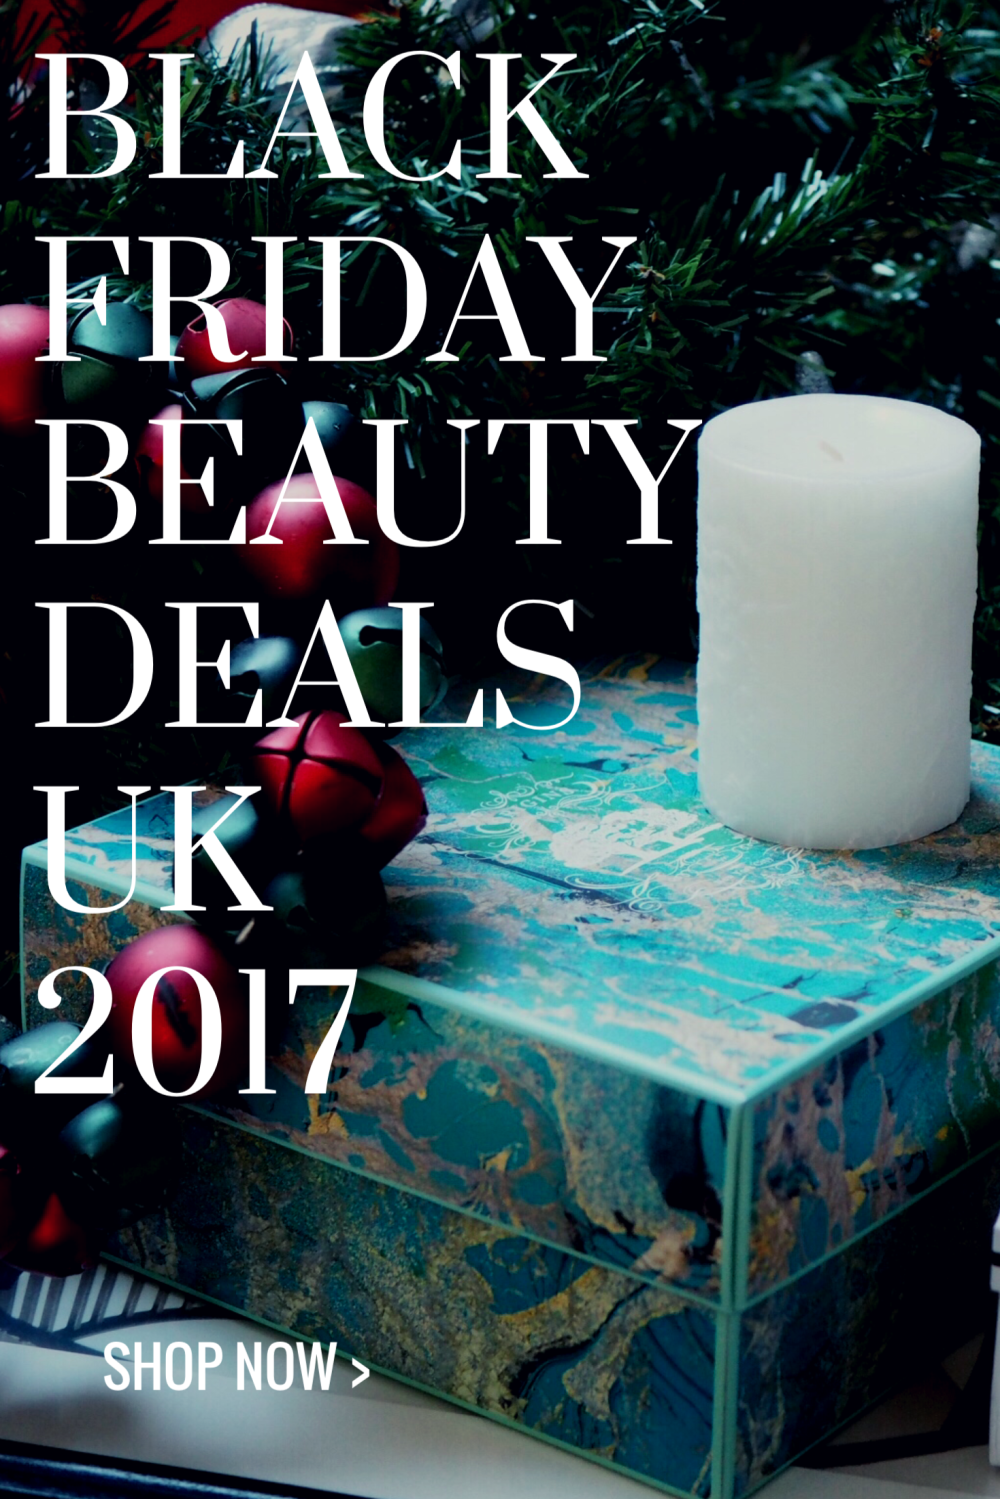 Black Friday Beauty Offers U.K. 2017- pinnable graphic of christmas presents